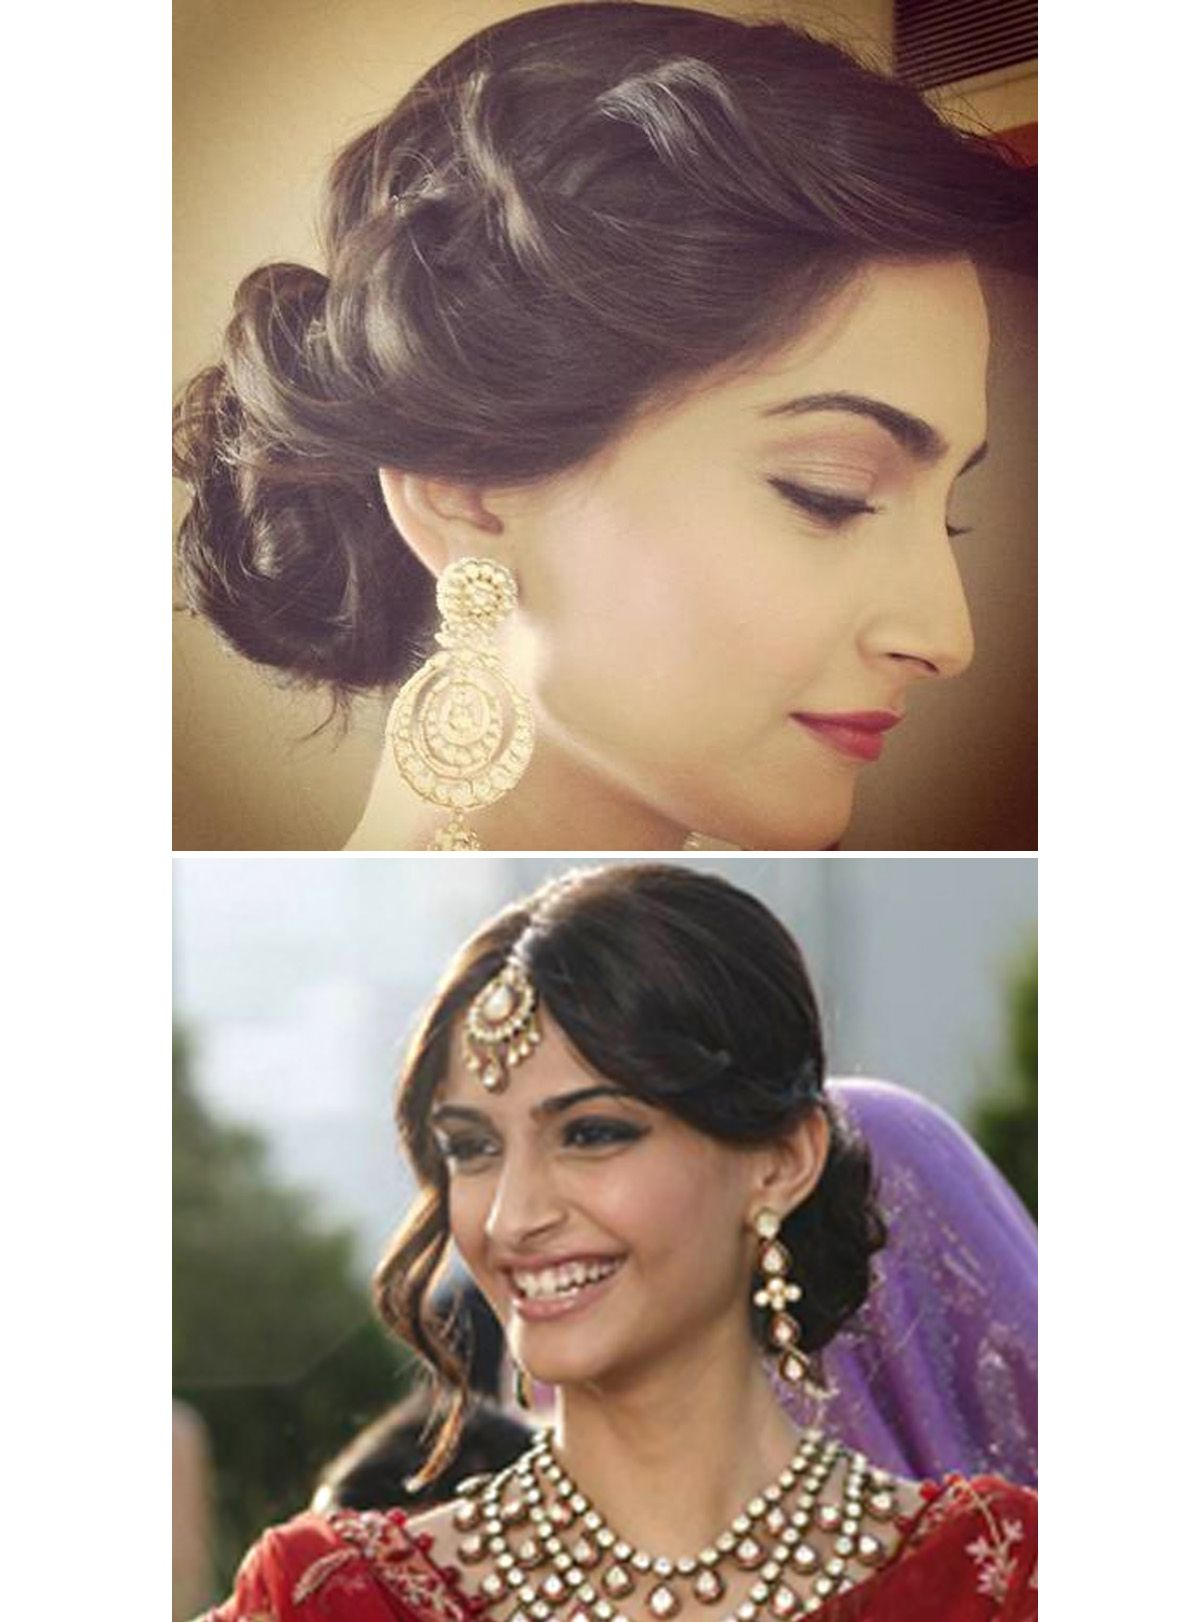 Sonam Kapoor Updo 2 Jpg 1190 1622 With Images Indian Hairstyles Bollywood Hairstyles Indian Wedding Hairstyles